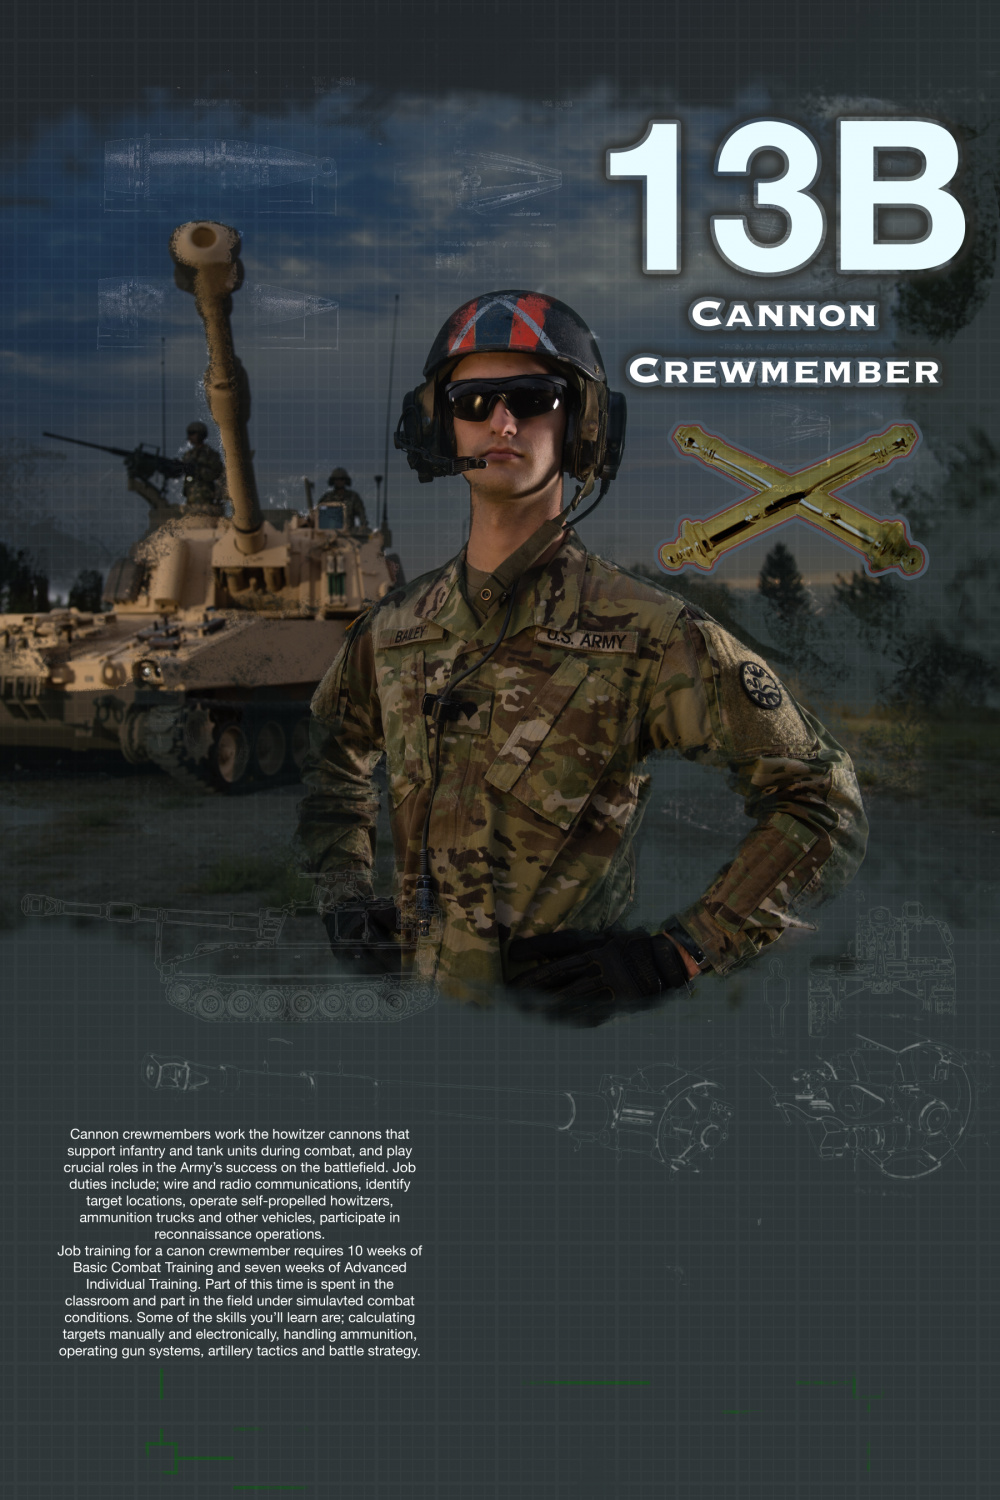 13B Cannon Crewmember-no unit patch